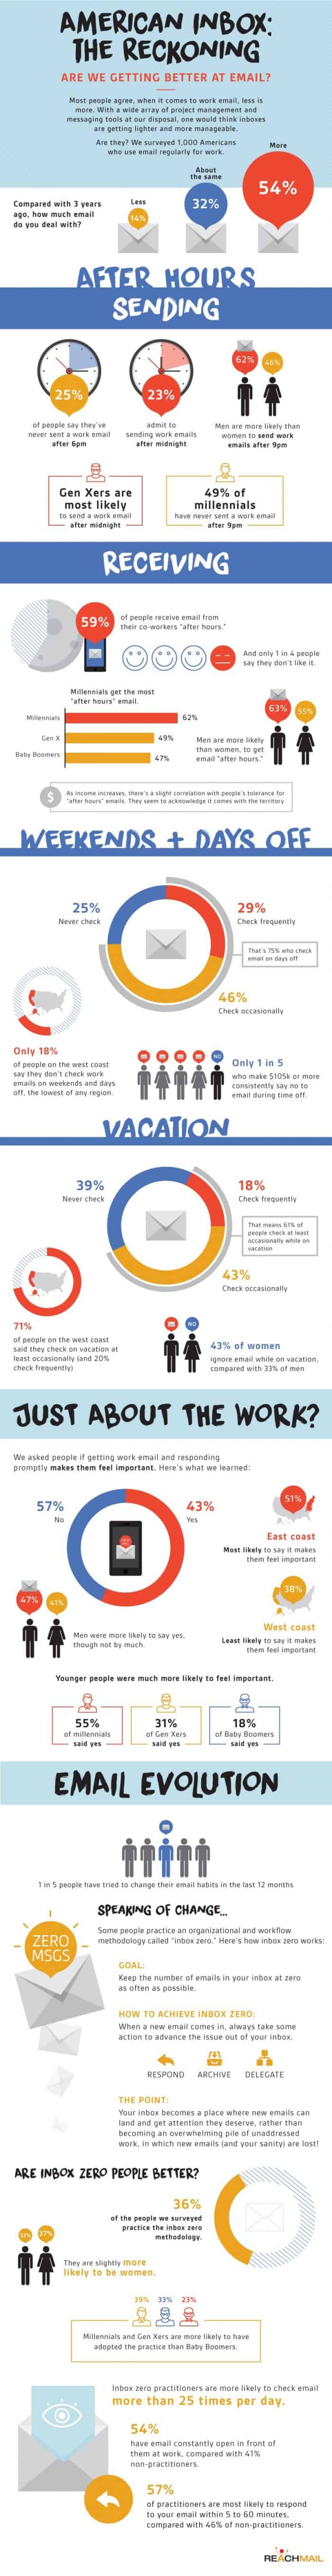 Infographic showing some interesting stats about how people handle their work-related emails.